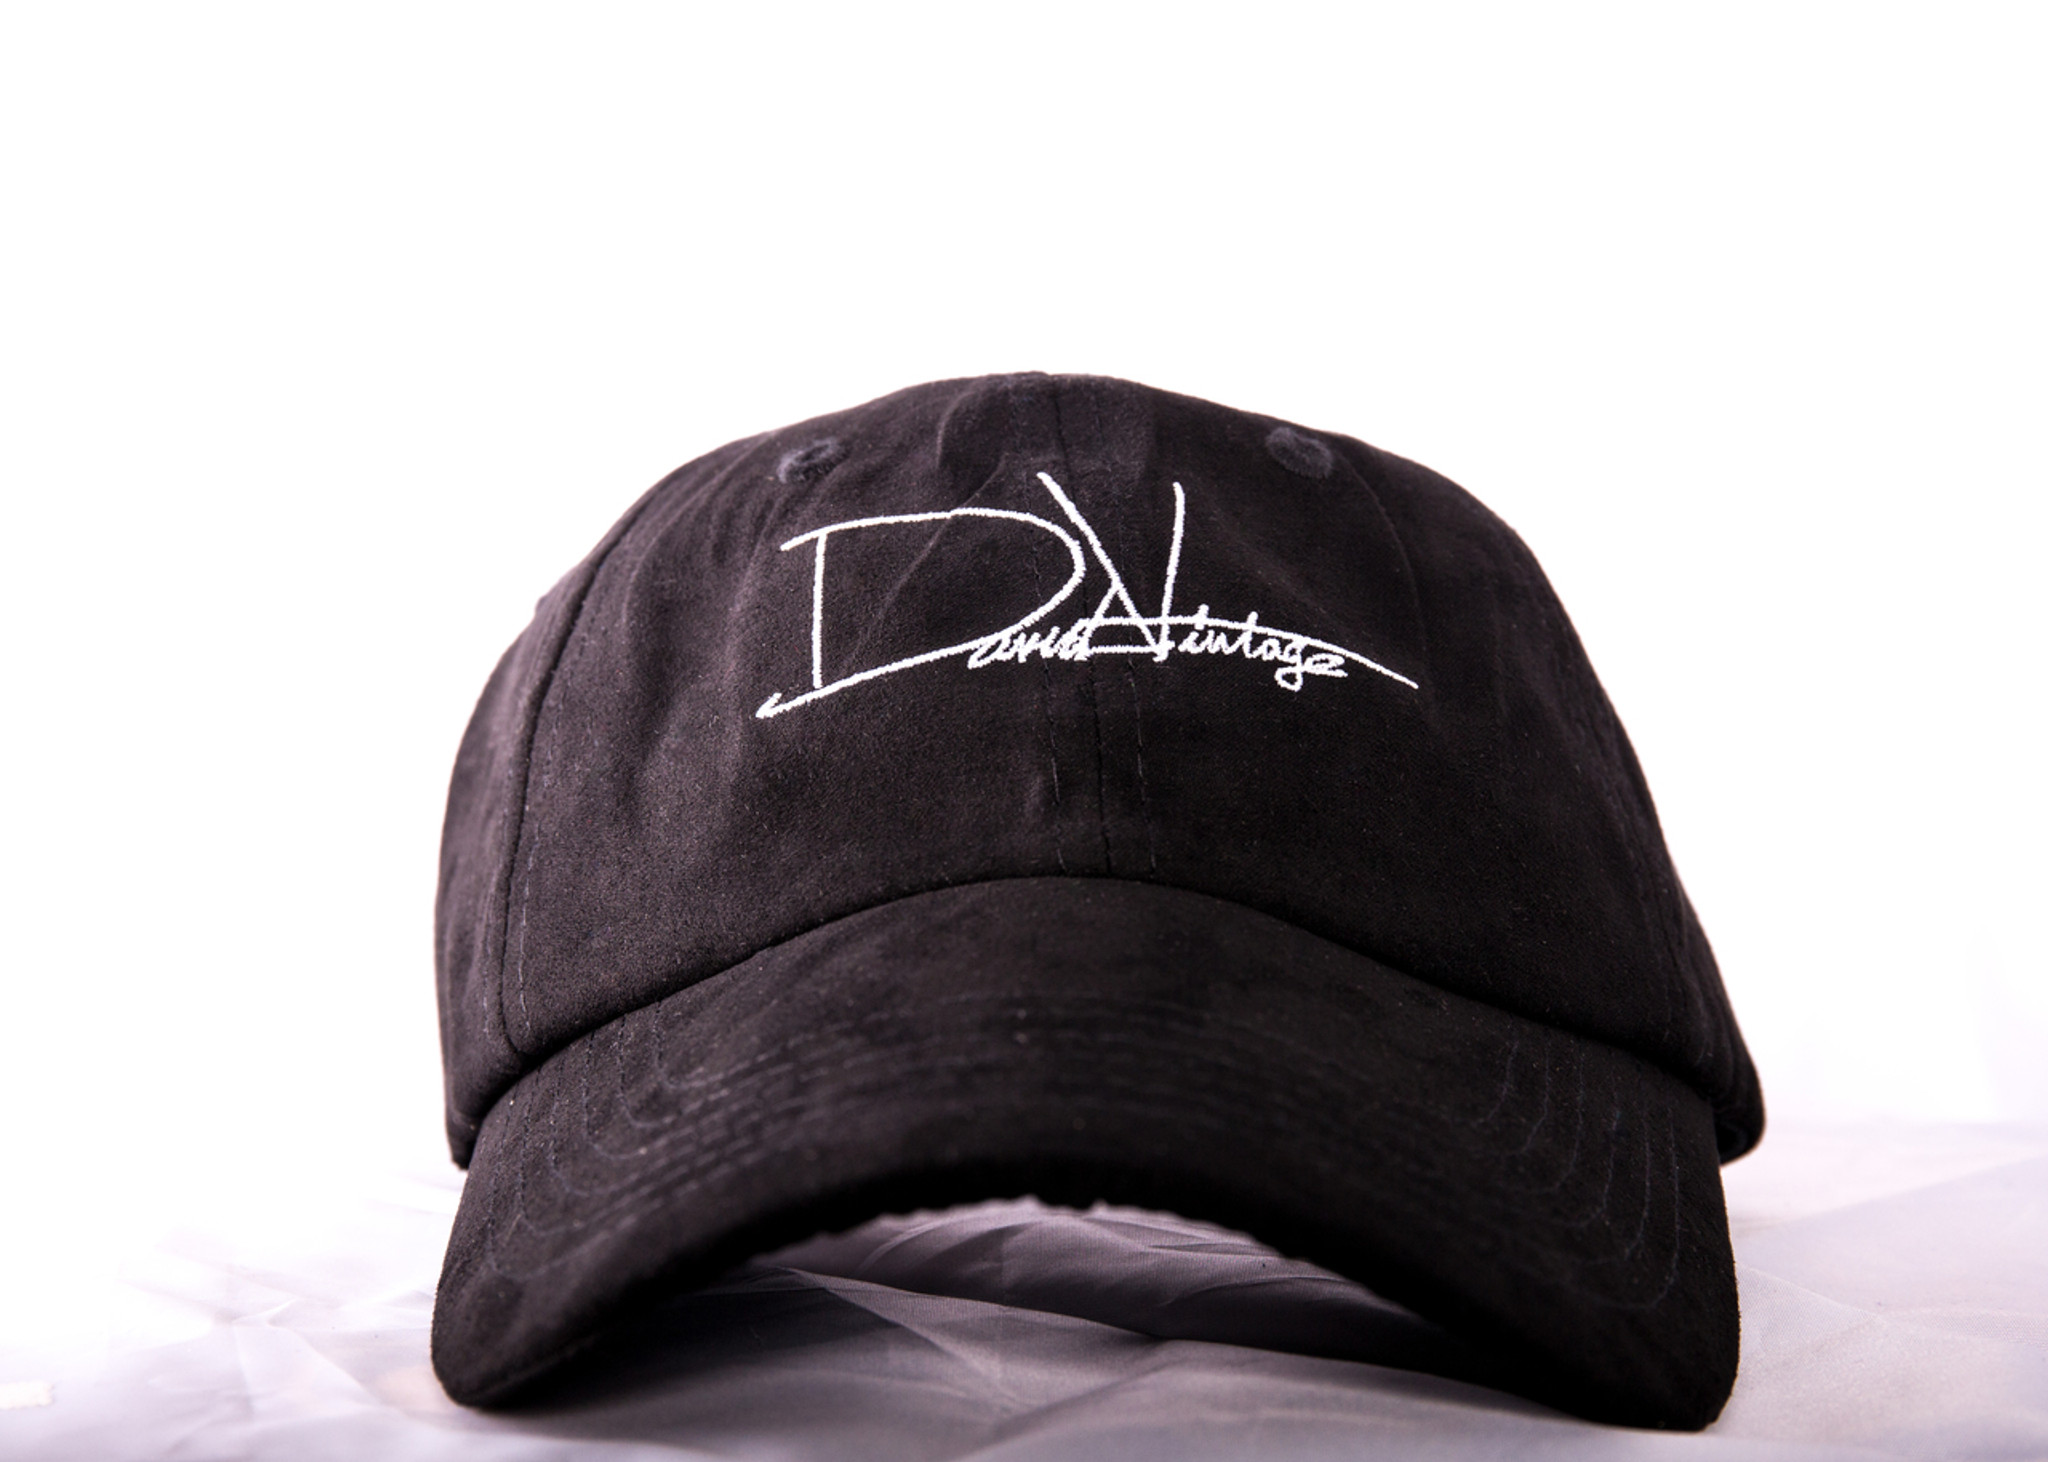 e09242f458 Indian Village Dad Hat - Black Suede - David Vintage